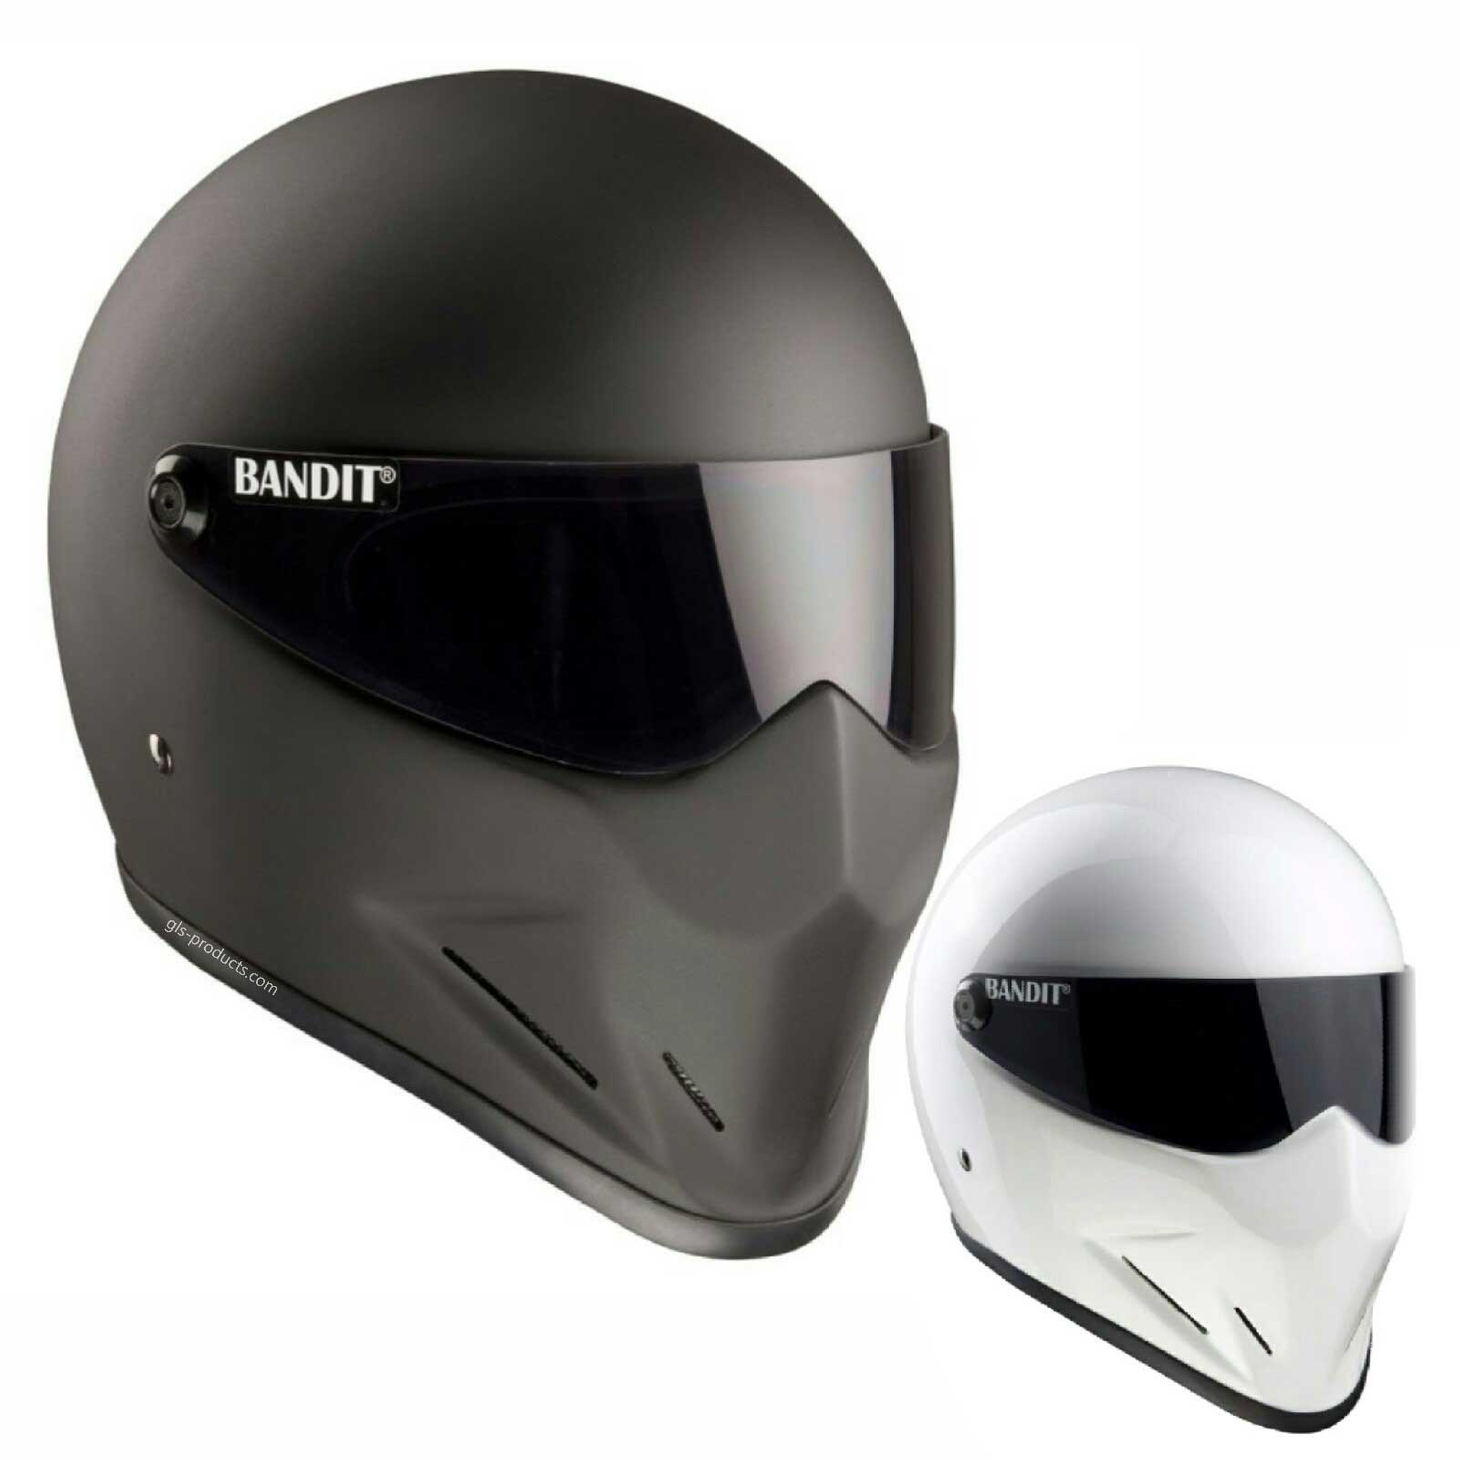 Bandit - Crystal Helmet - for Streetfighter, Mad Max - Fibreglass